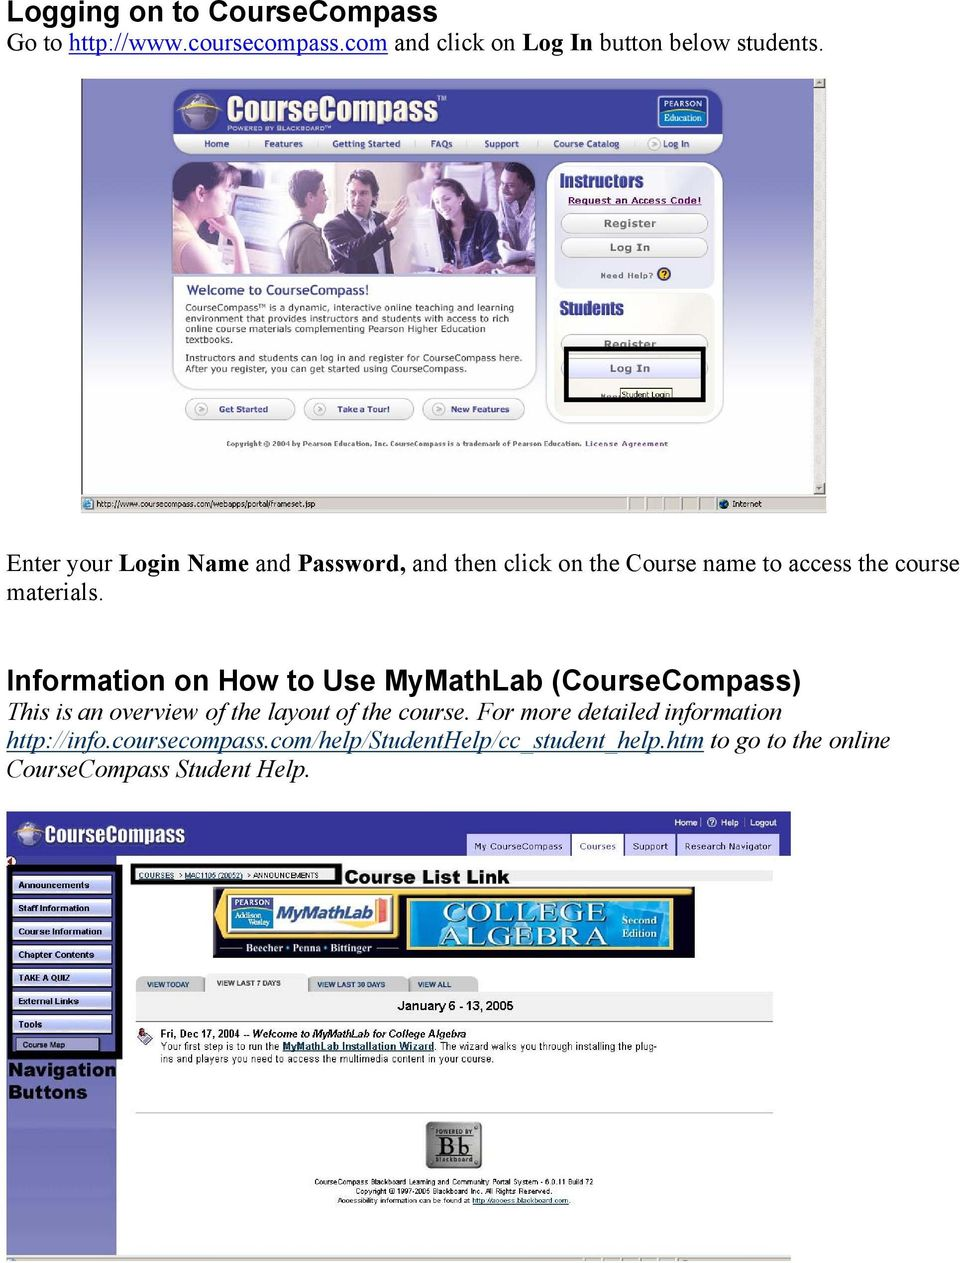 Information on How to Use MyMathLab (CourseCompass) This is an overview of the layout of the course.